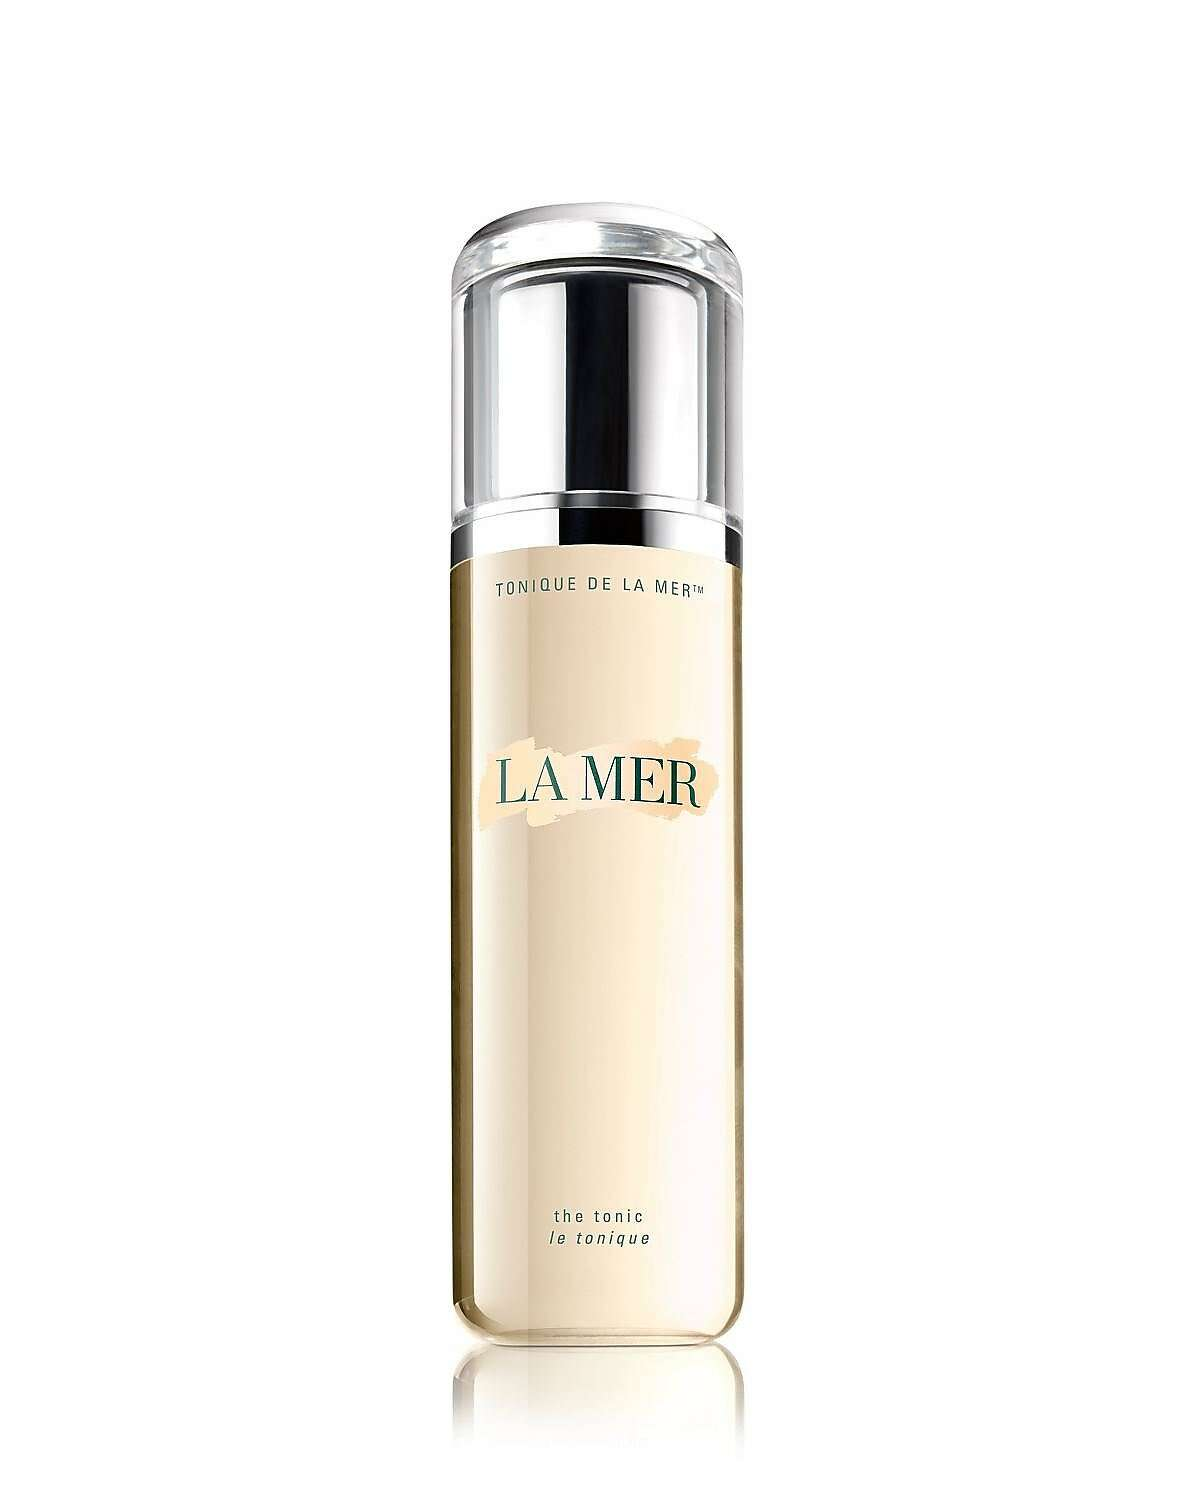 Bloomingdale's in San Francisco offers facials using La Mer, Dior and La Prairie products.